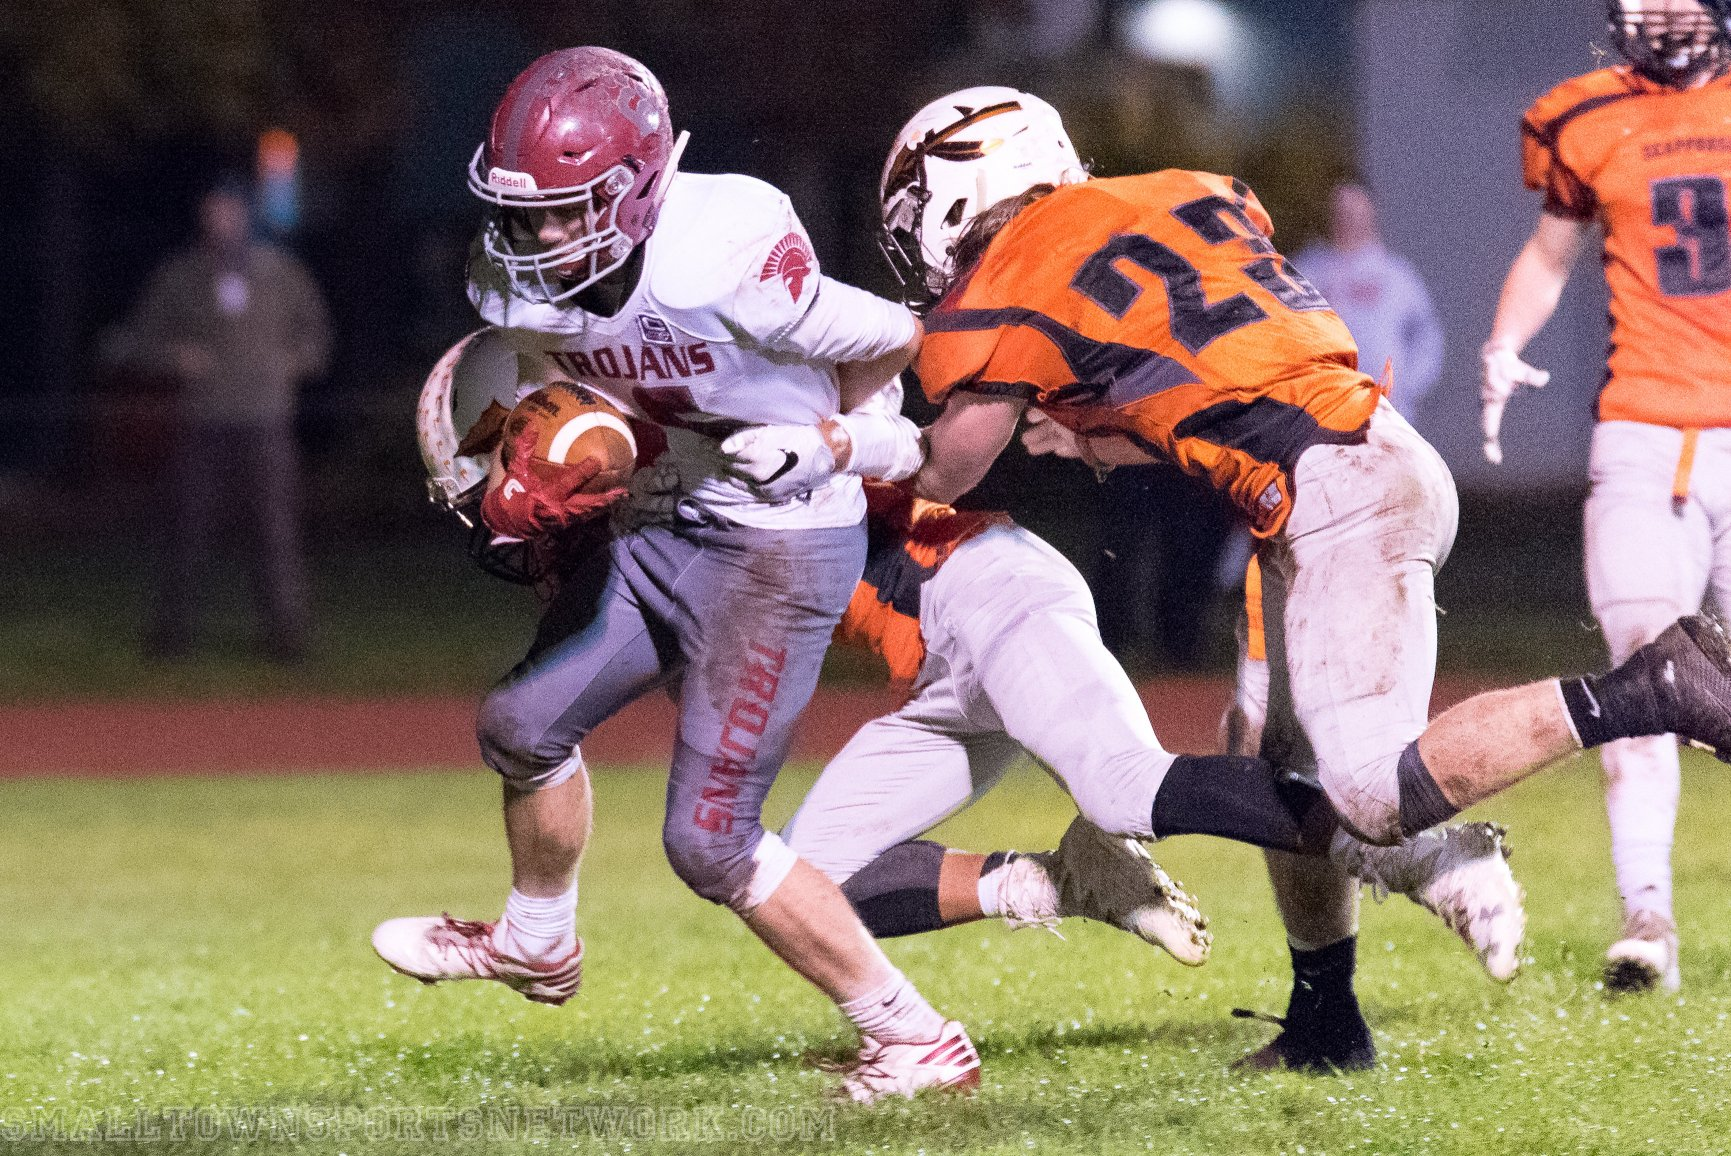 Scappoose Takes Down Douglas